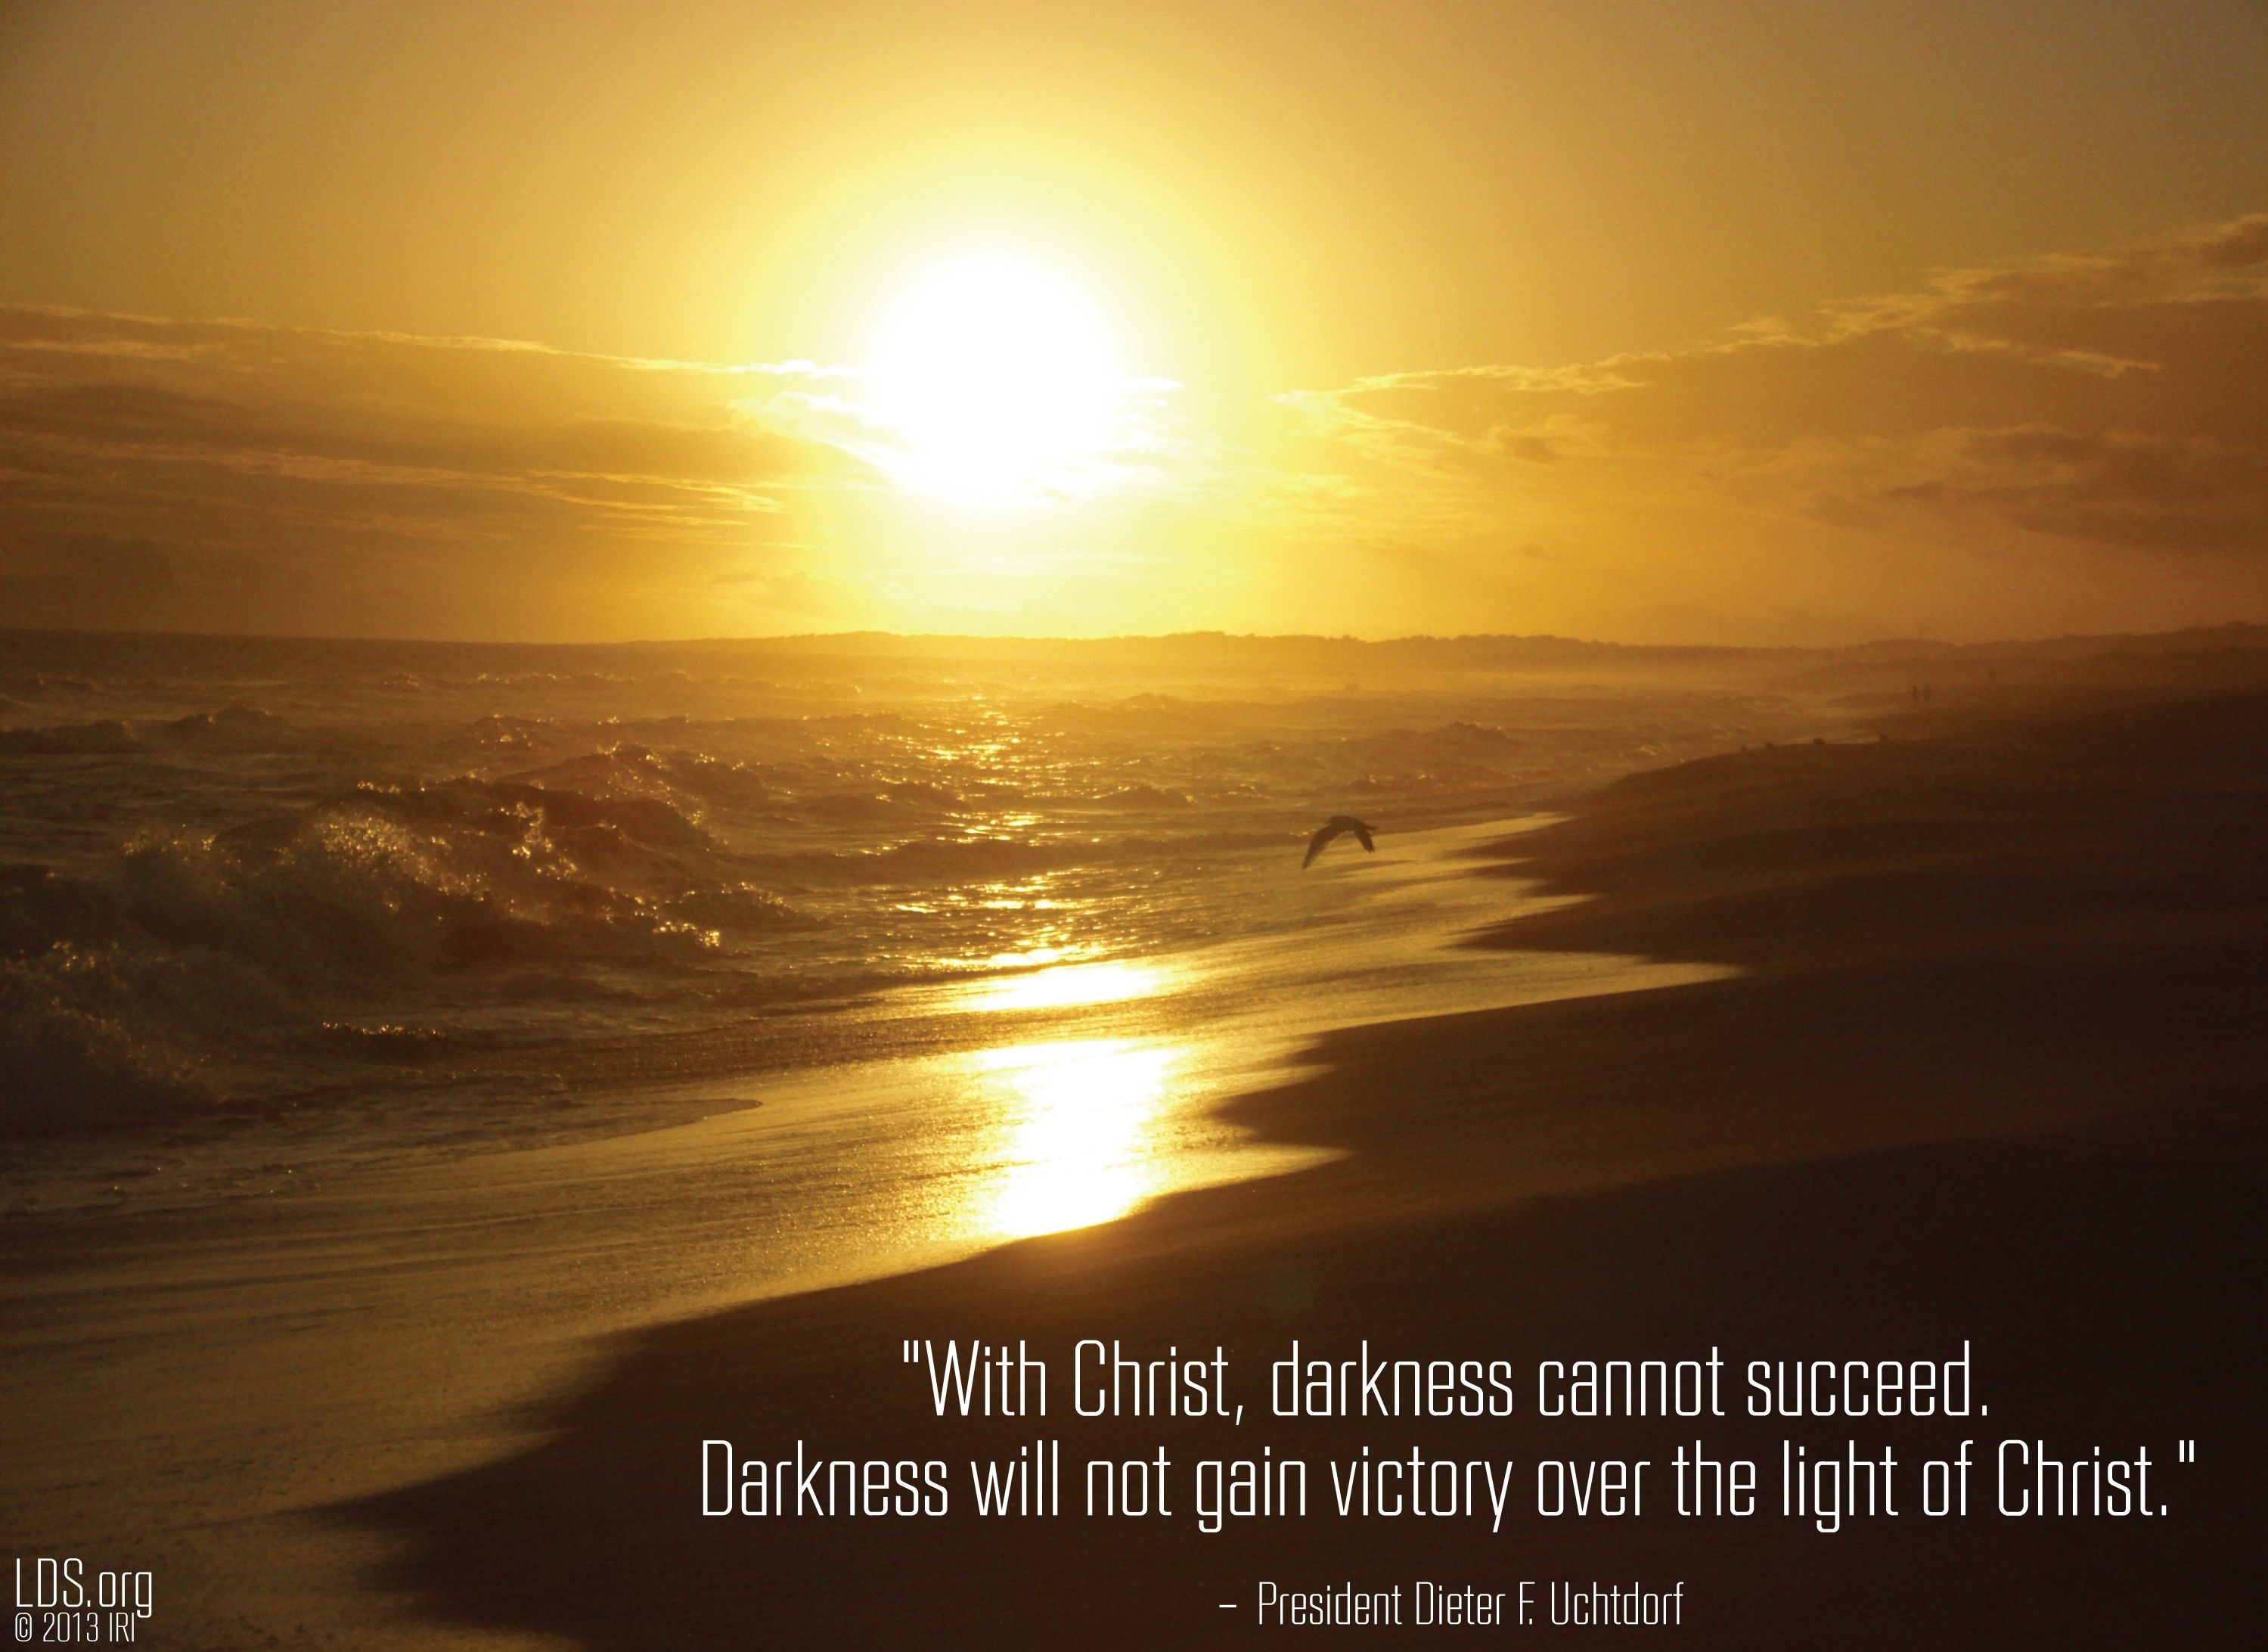 """""""With Christ, darkness cannot succeed. Darkness will not gain victory over the light of Christ.""""—President Dieter F. Uchtdorf, """"The Hope of God's Light"""""""